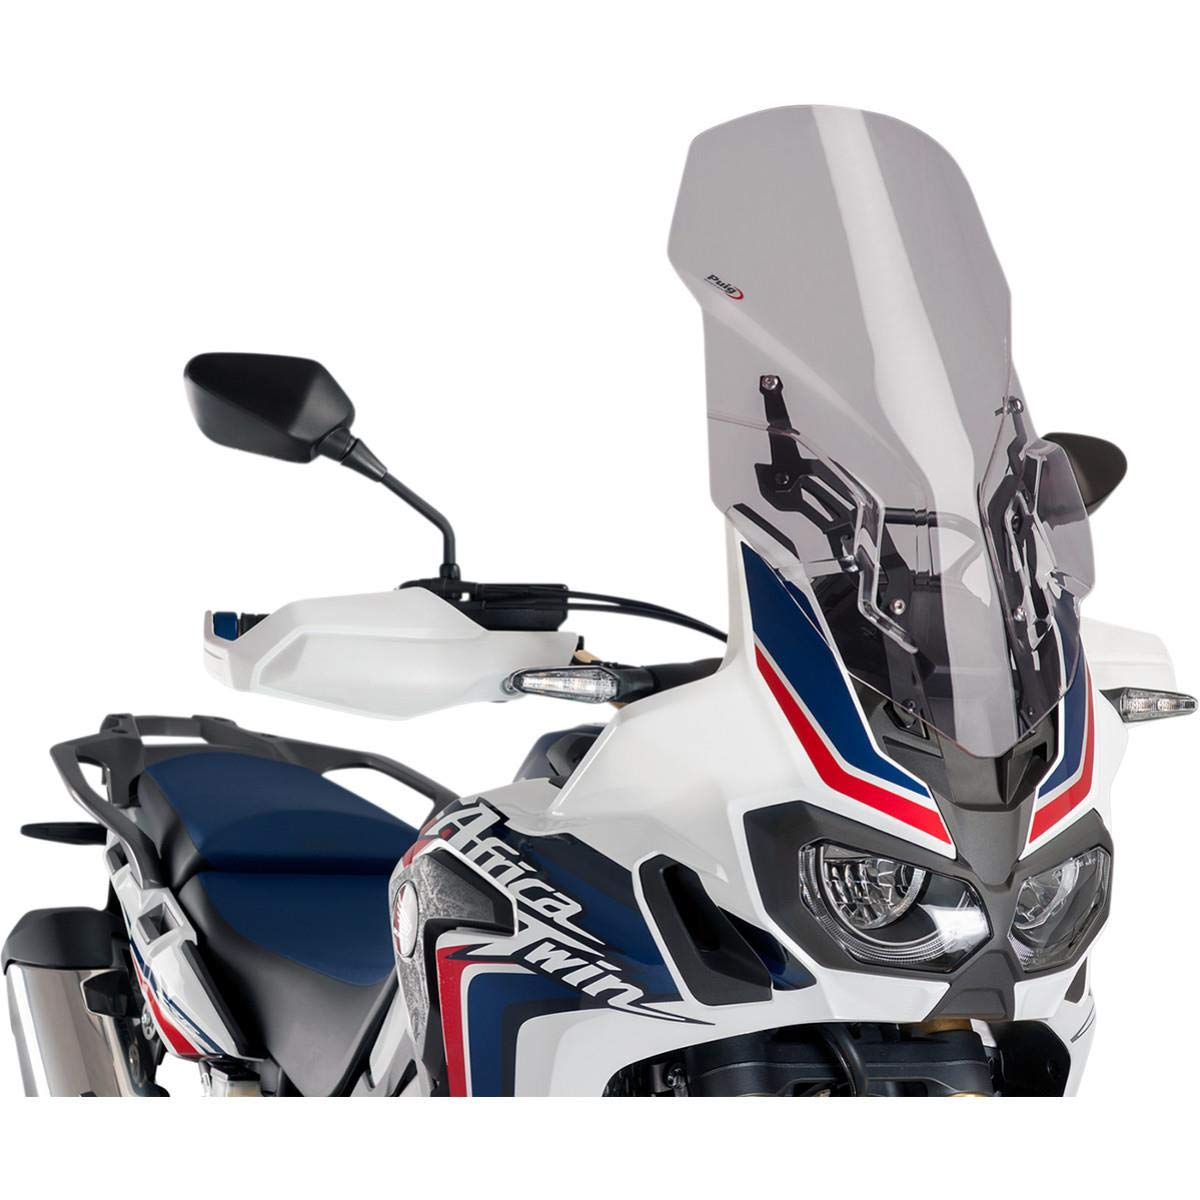 Puig Touring Screen Adjustable 9156H 16 Honda CRF1000L Africa Twin Adventure Sports 18-19